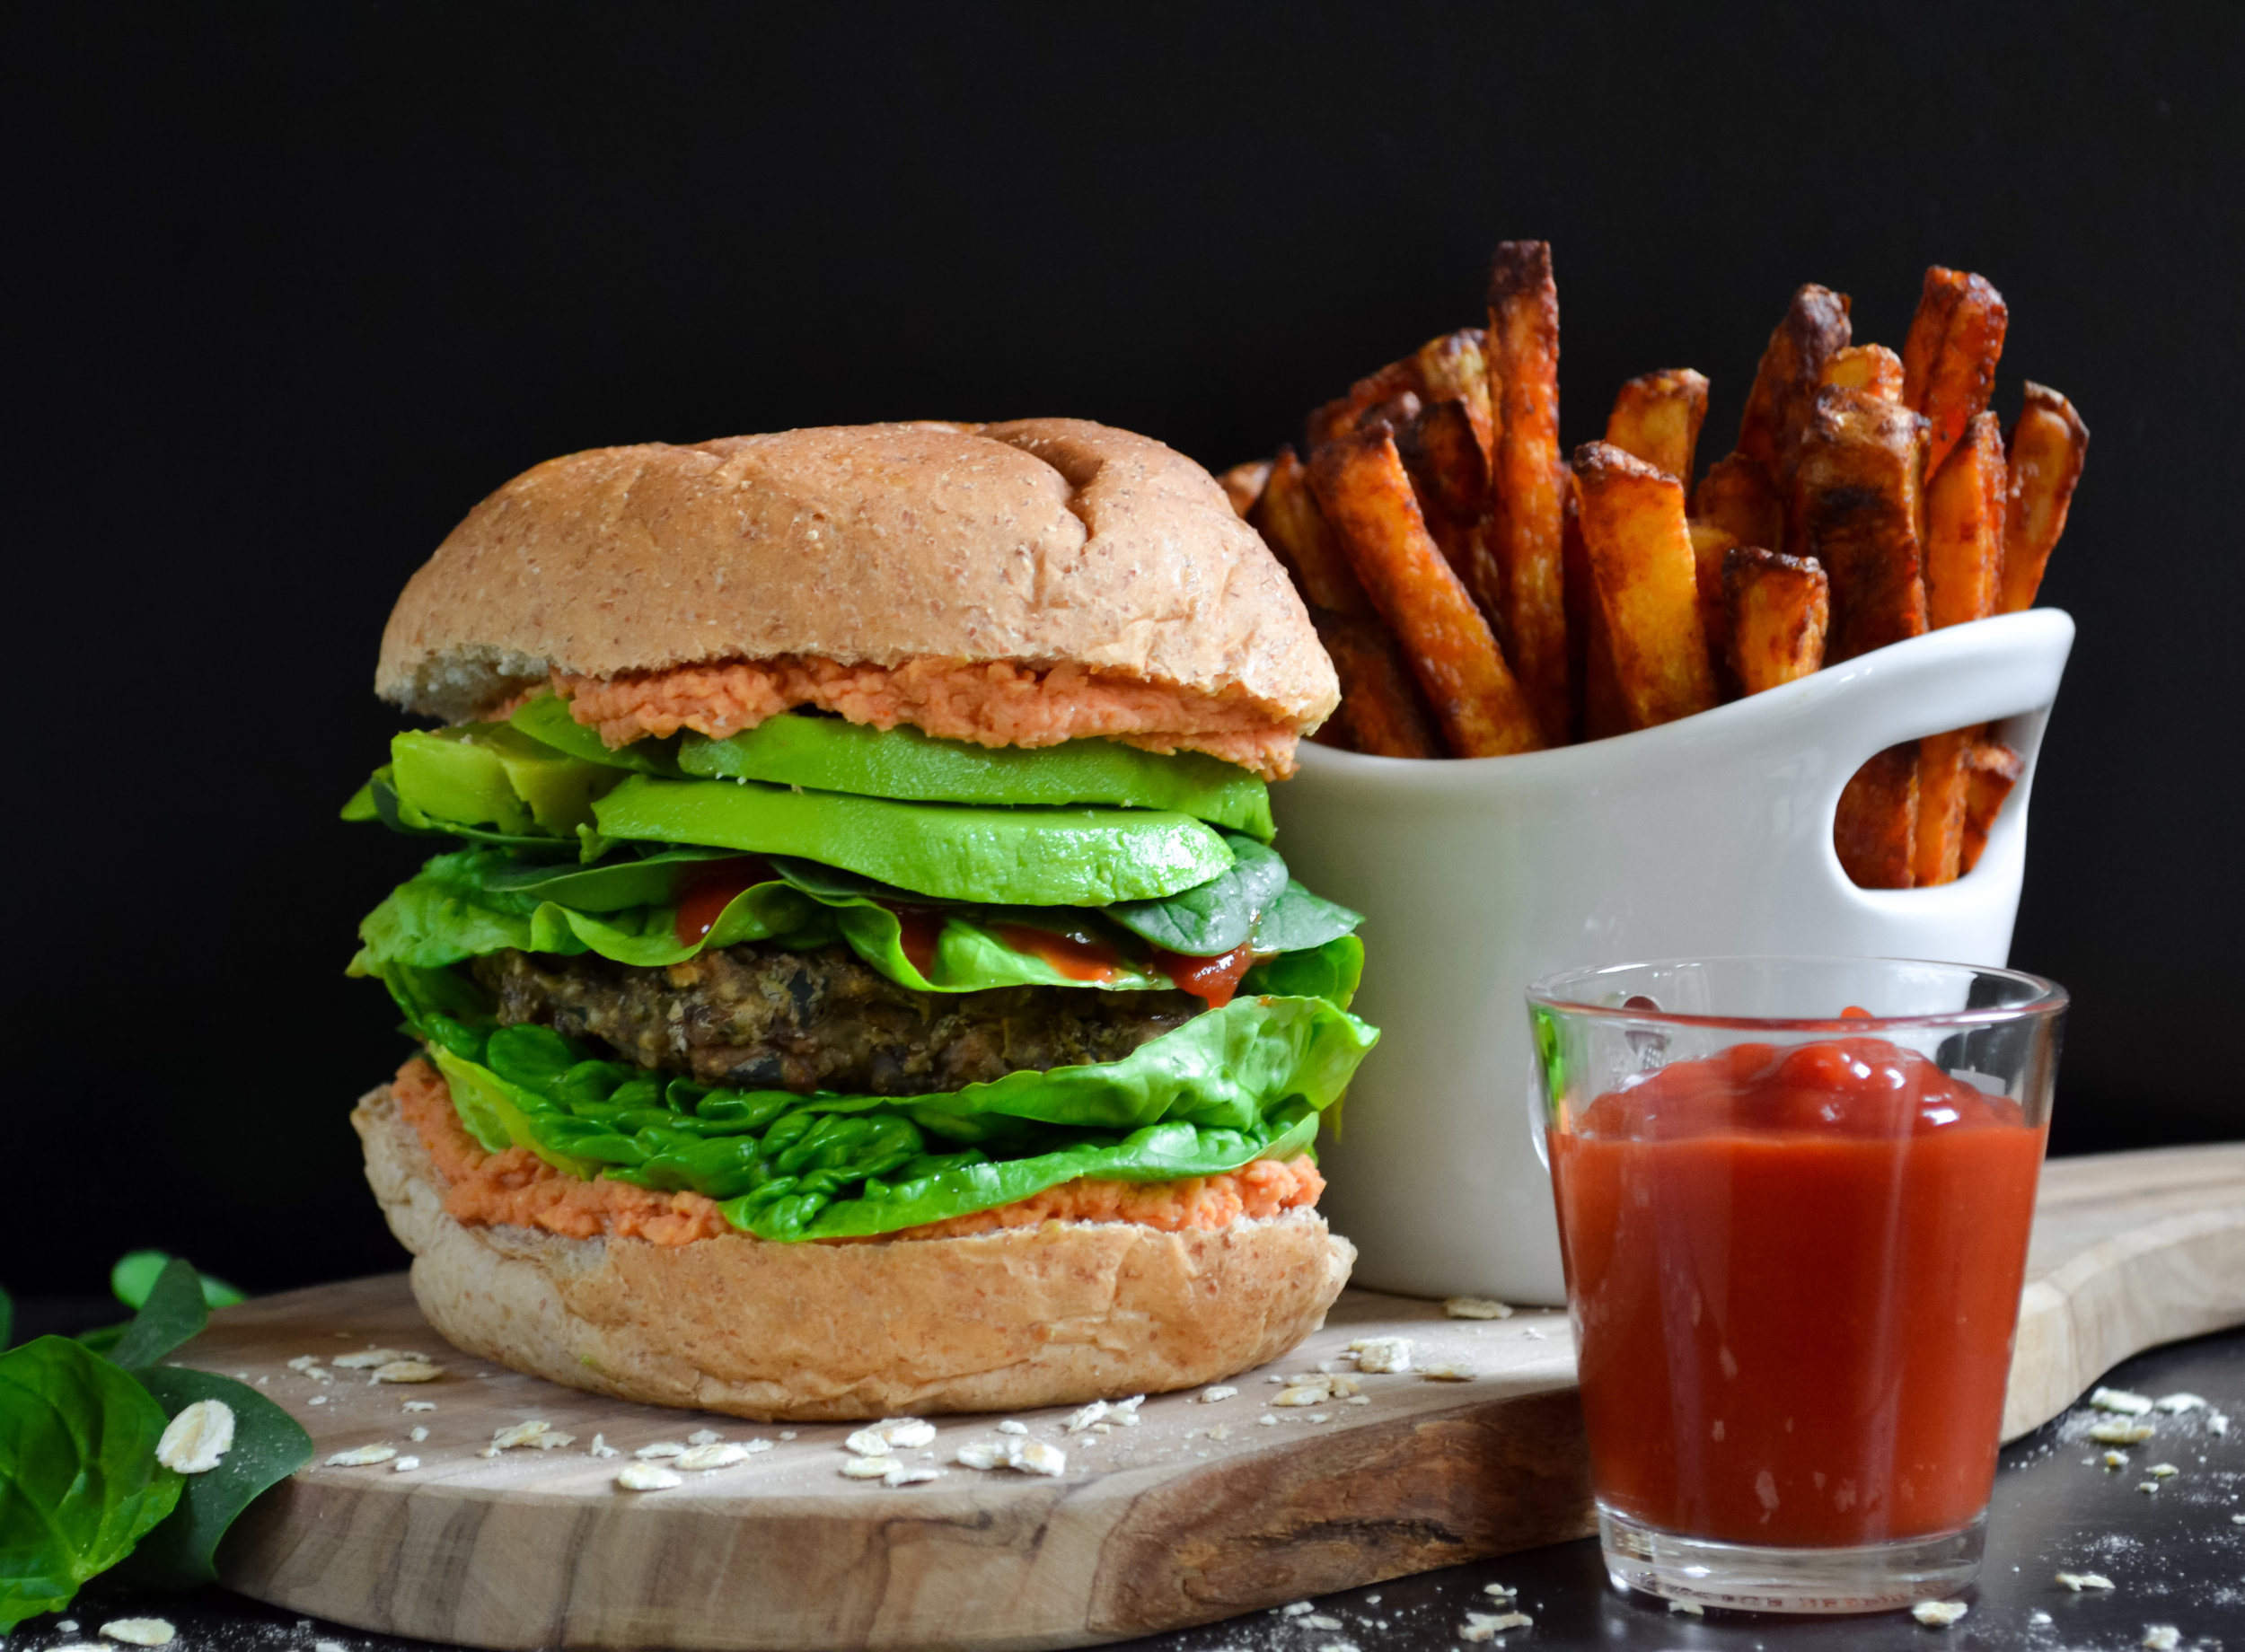 Mushroom, Lentil and Spinach Vegan Burger with Paprika Fries and Ketchup